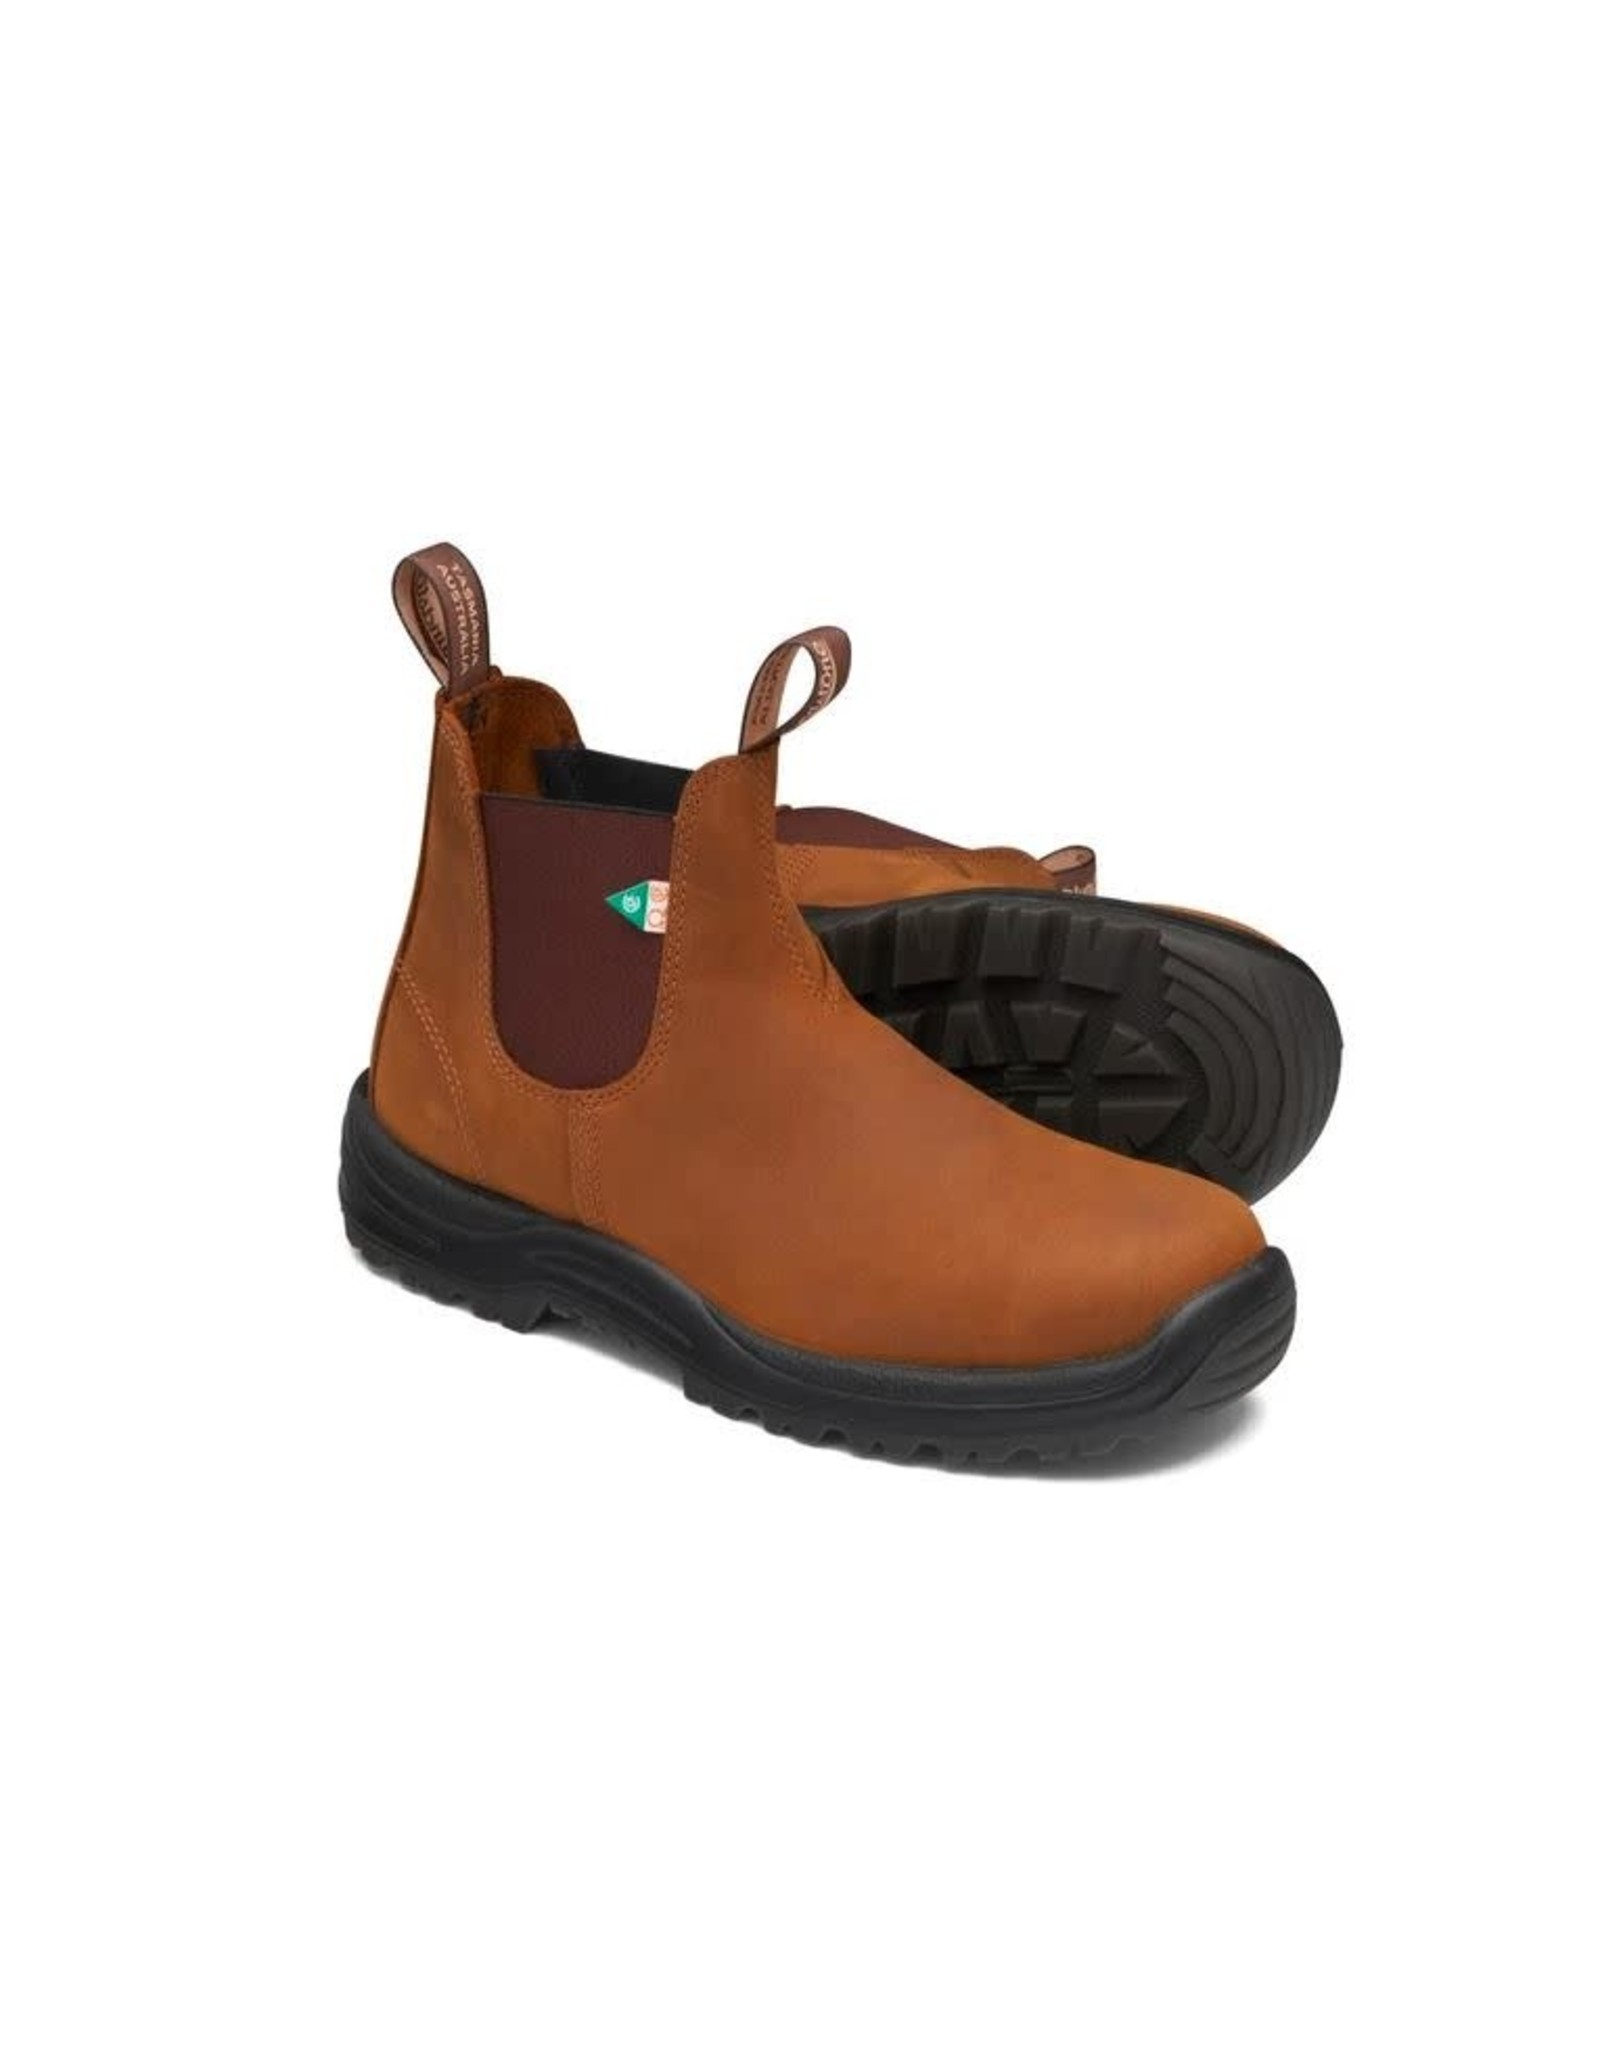 Blundstone Blundstone - Botte homme csa greenpatch crazy horse brown